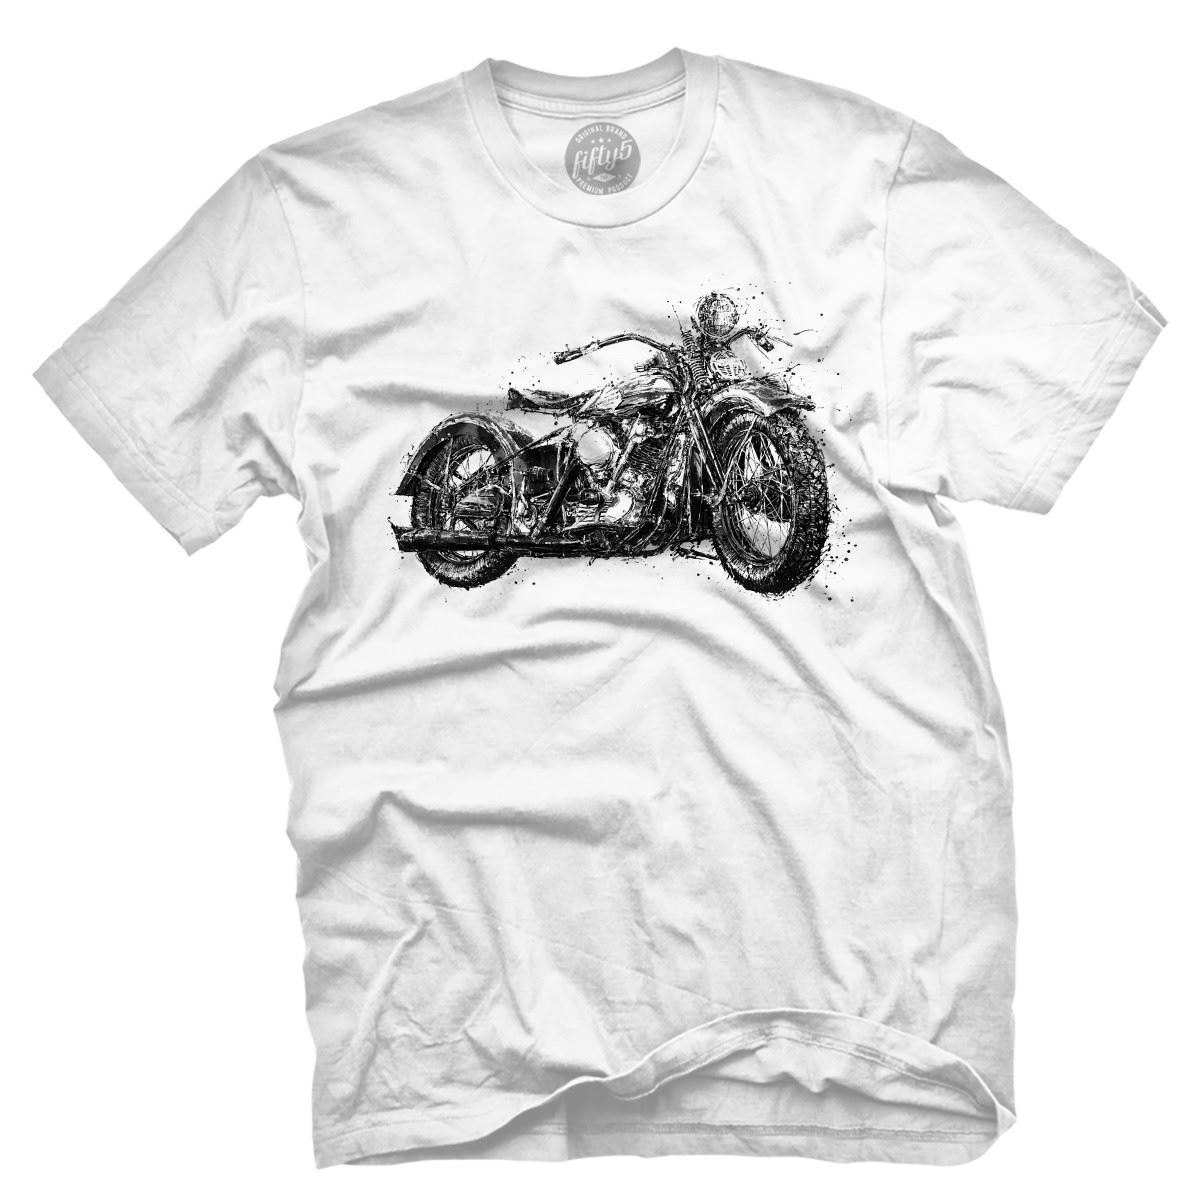 HD Knucklehead Men's T Shirt